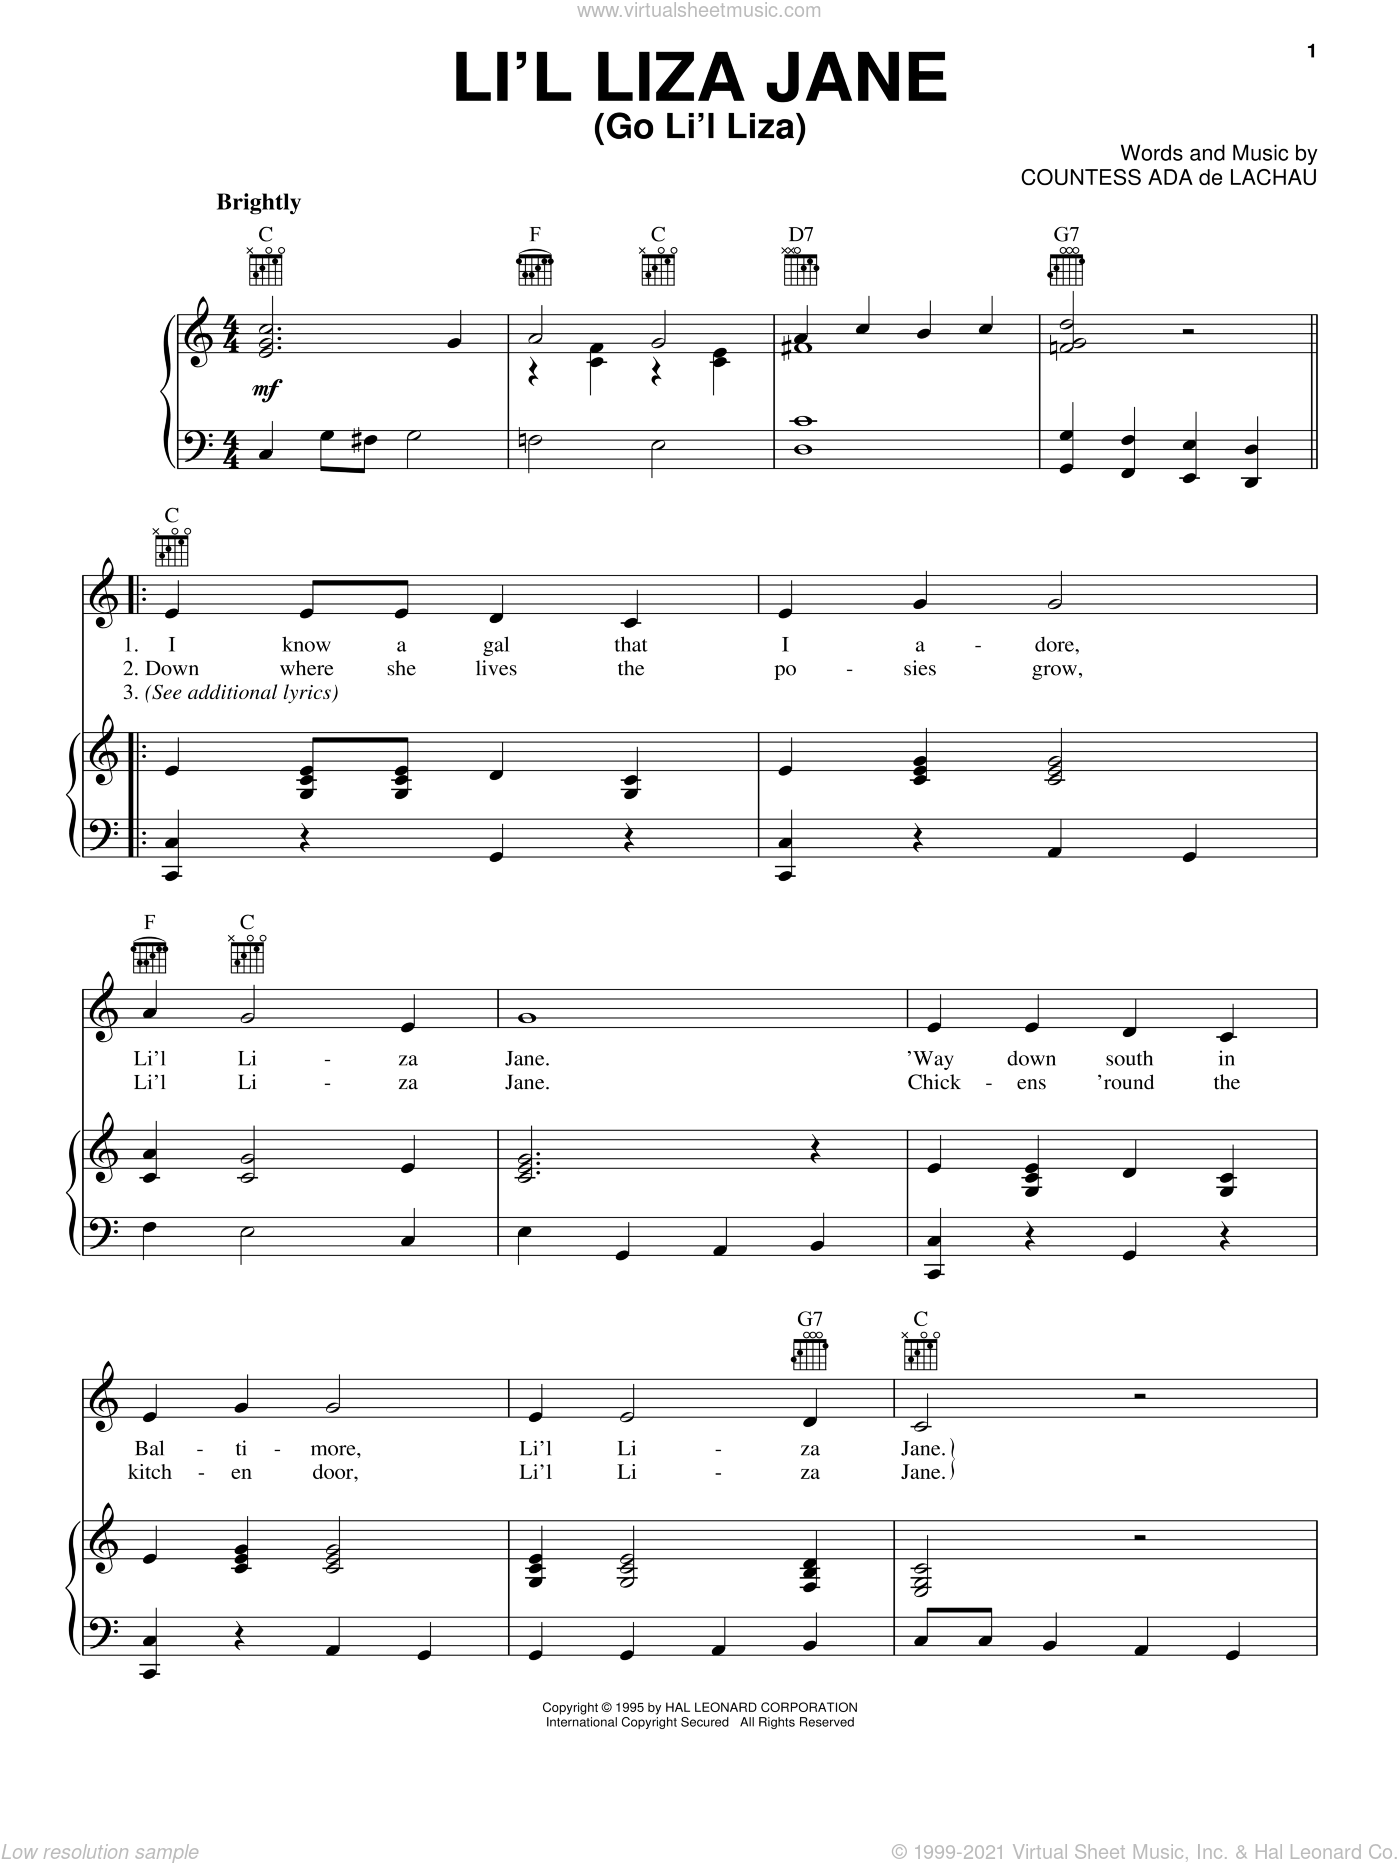 Li'l Liza Jane (Go Li'l Liza) sheet music for voice, piano or guitar by Countess Ada De Lachau